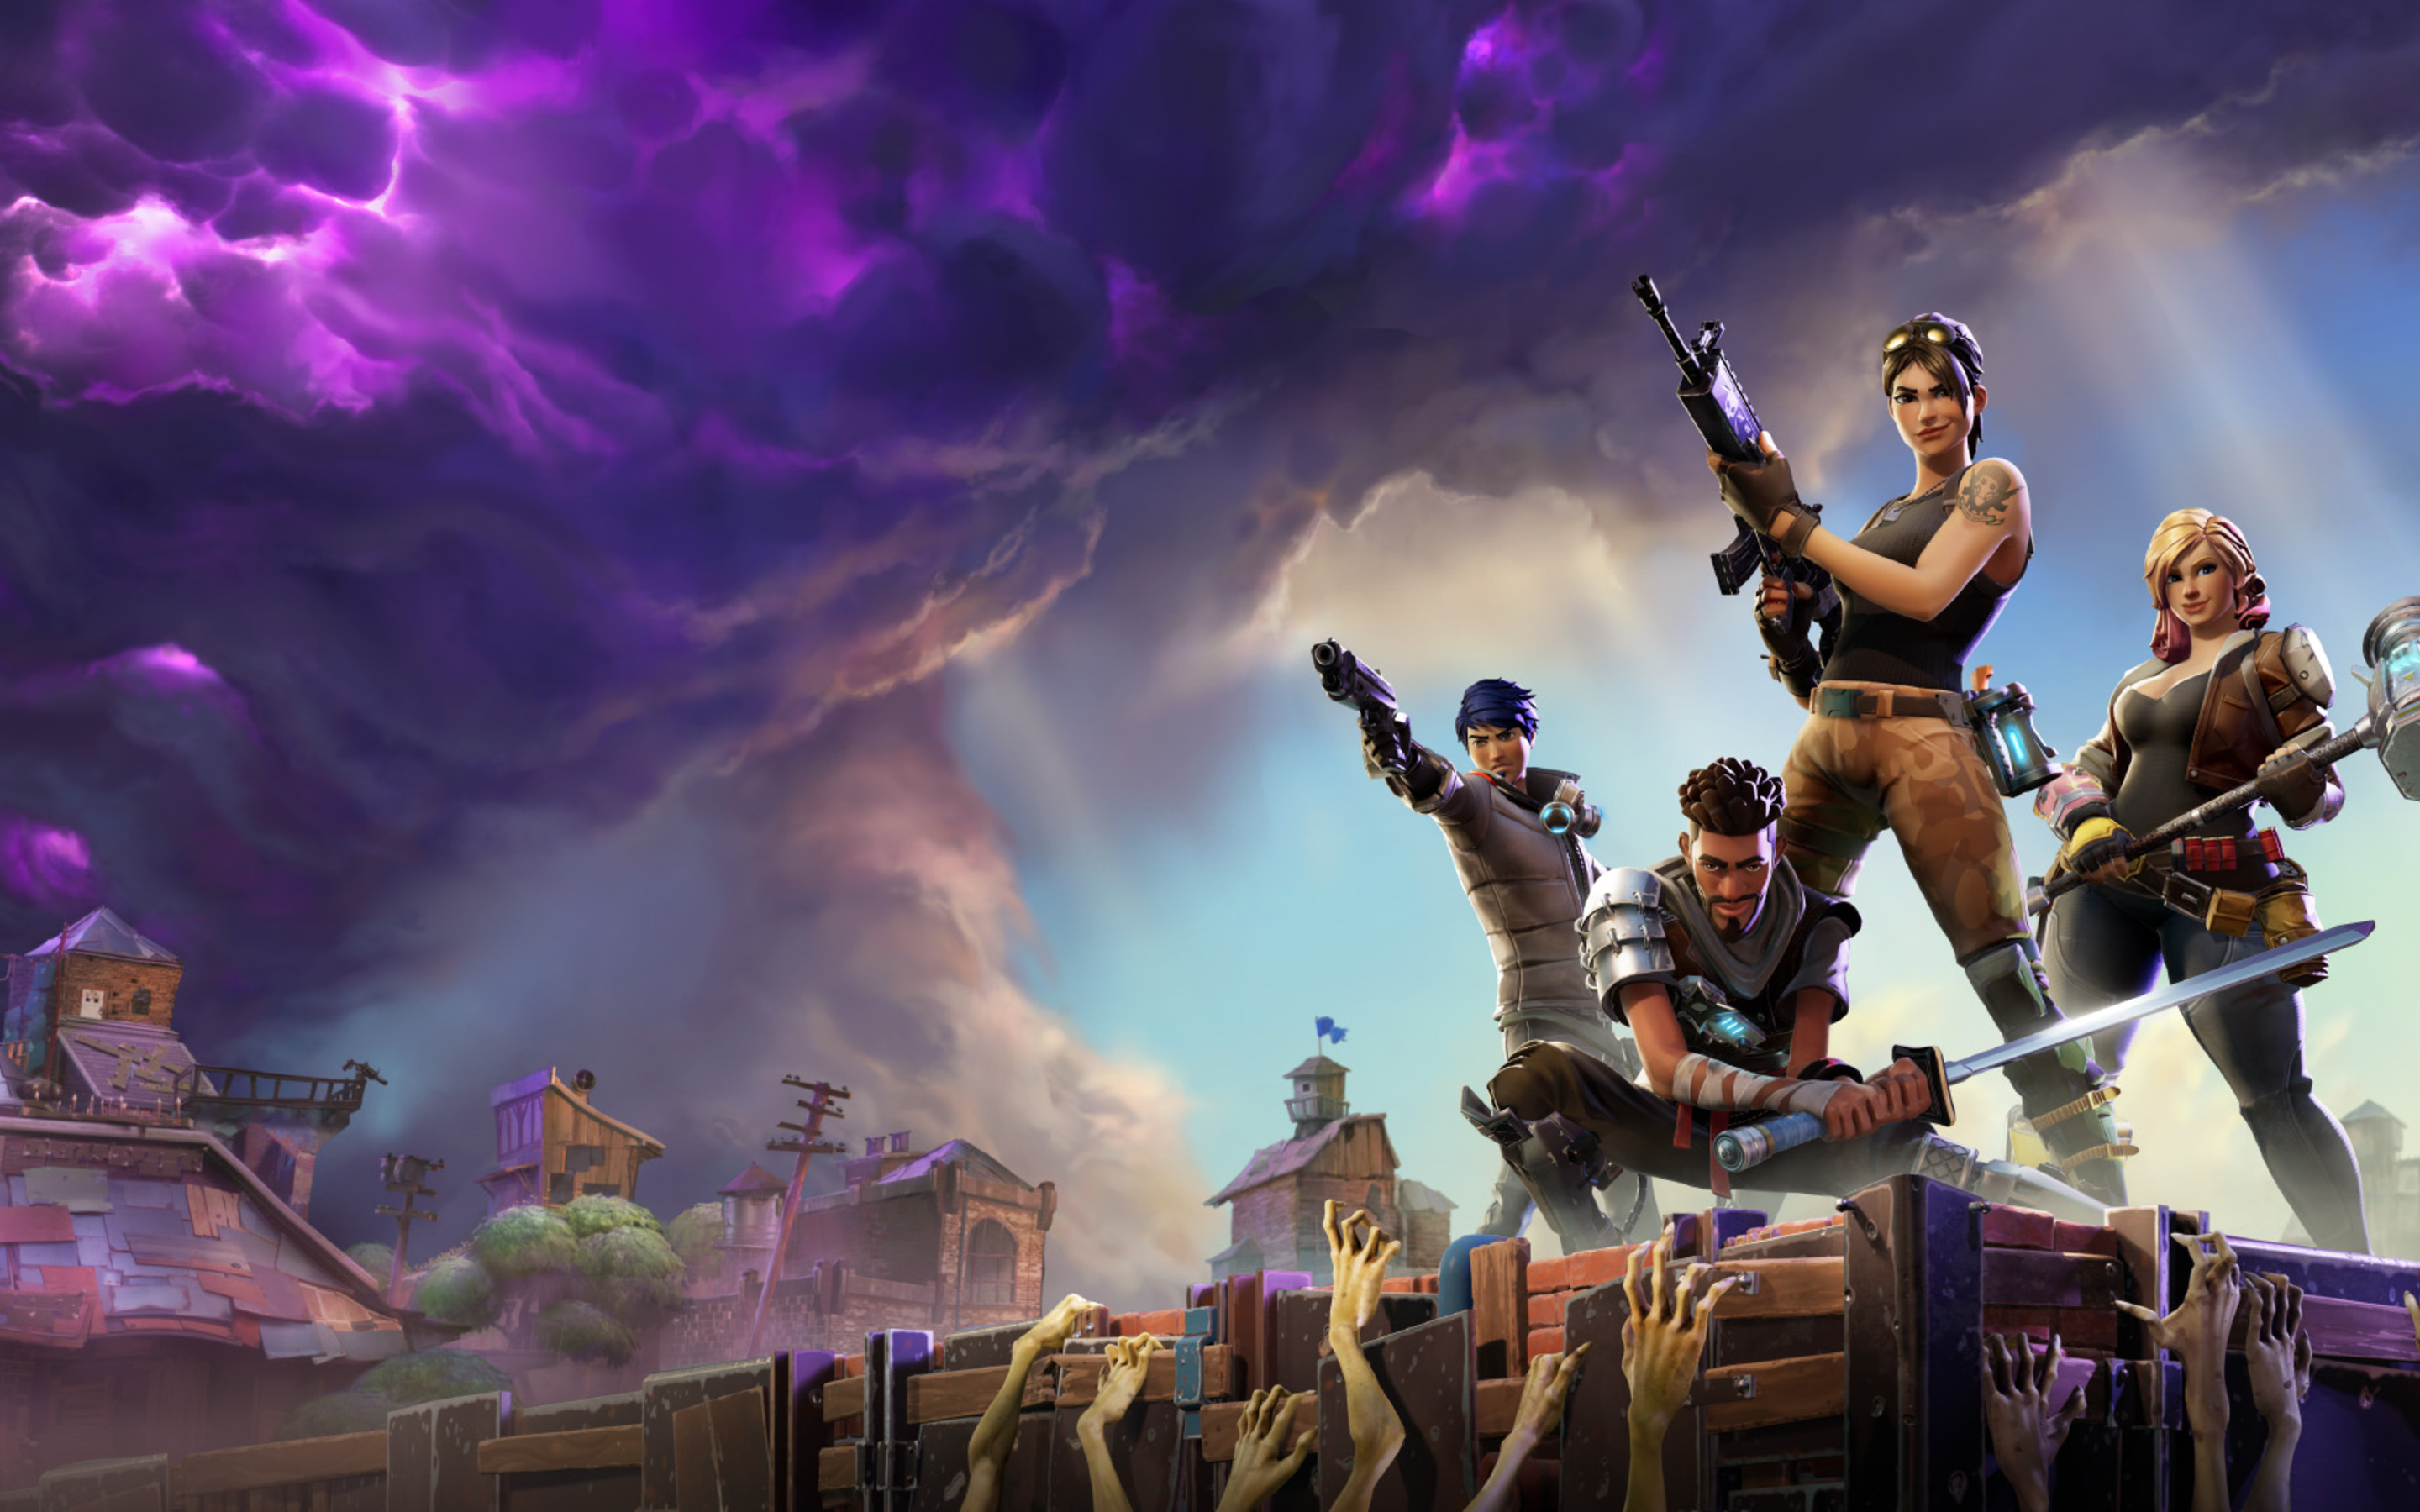 2880x1800 Fortnite Hd Macbook Pro Retina Hd 4k Wallpapers Images